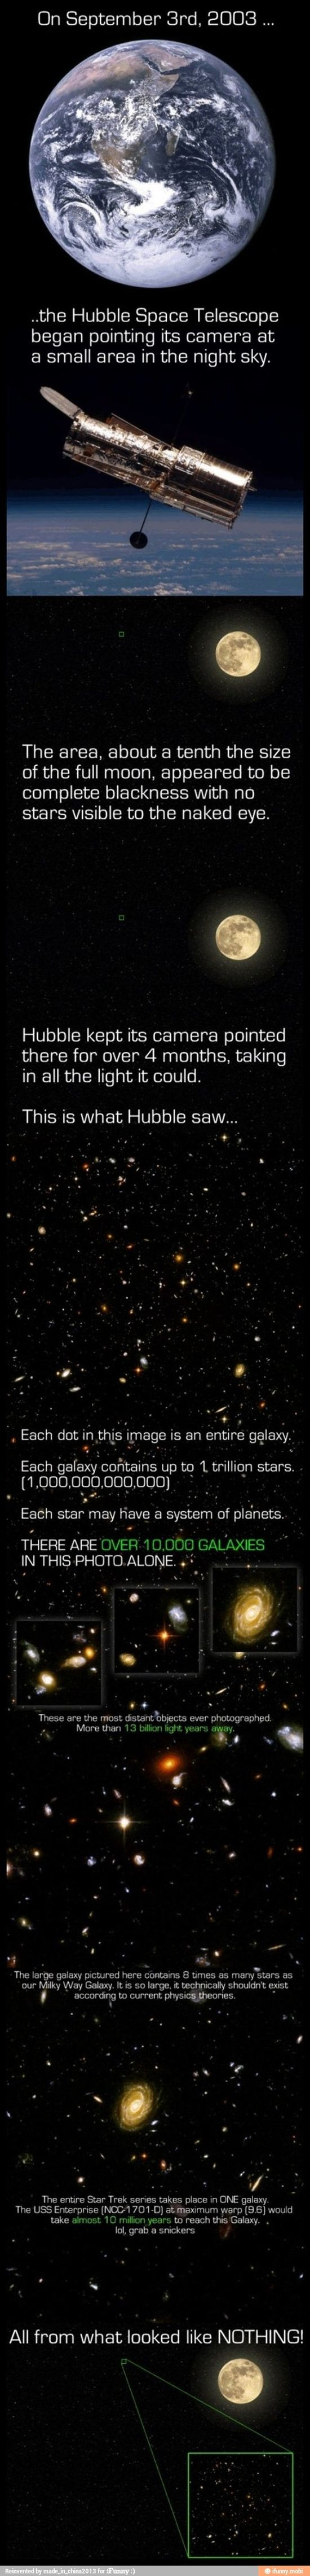 Error on this: says average galaxy contains over 1 trillion stars but the number is actually an average of 100 billion. And approximately 100 billion galaxies in the total observable universe. Still, that tells us we've got one huge family out there!